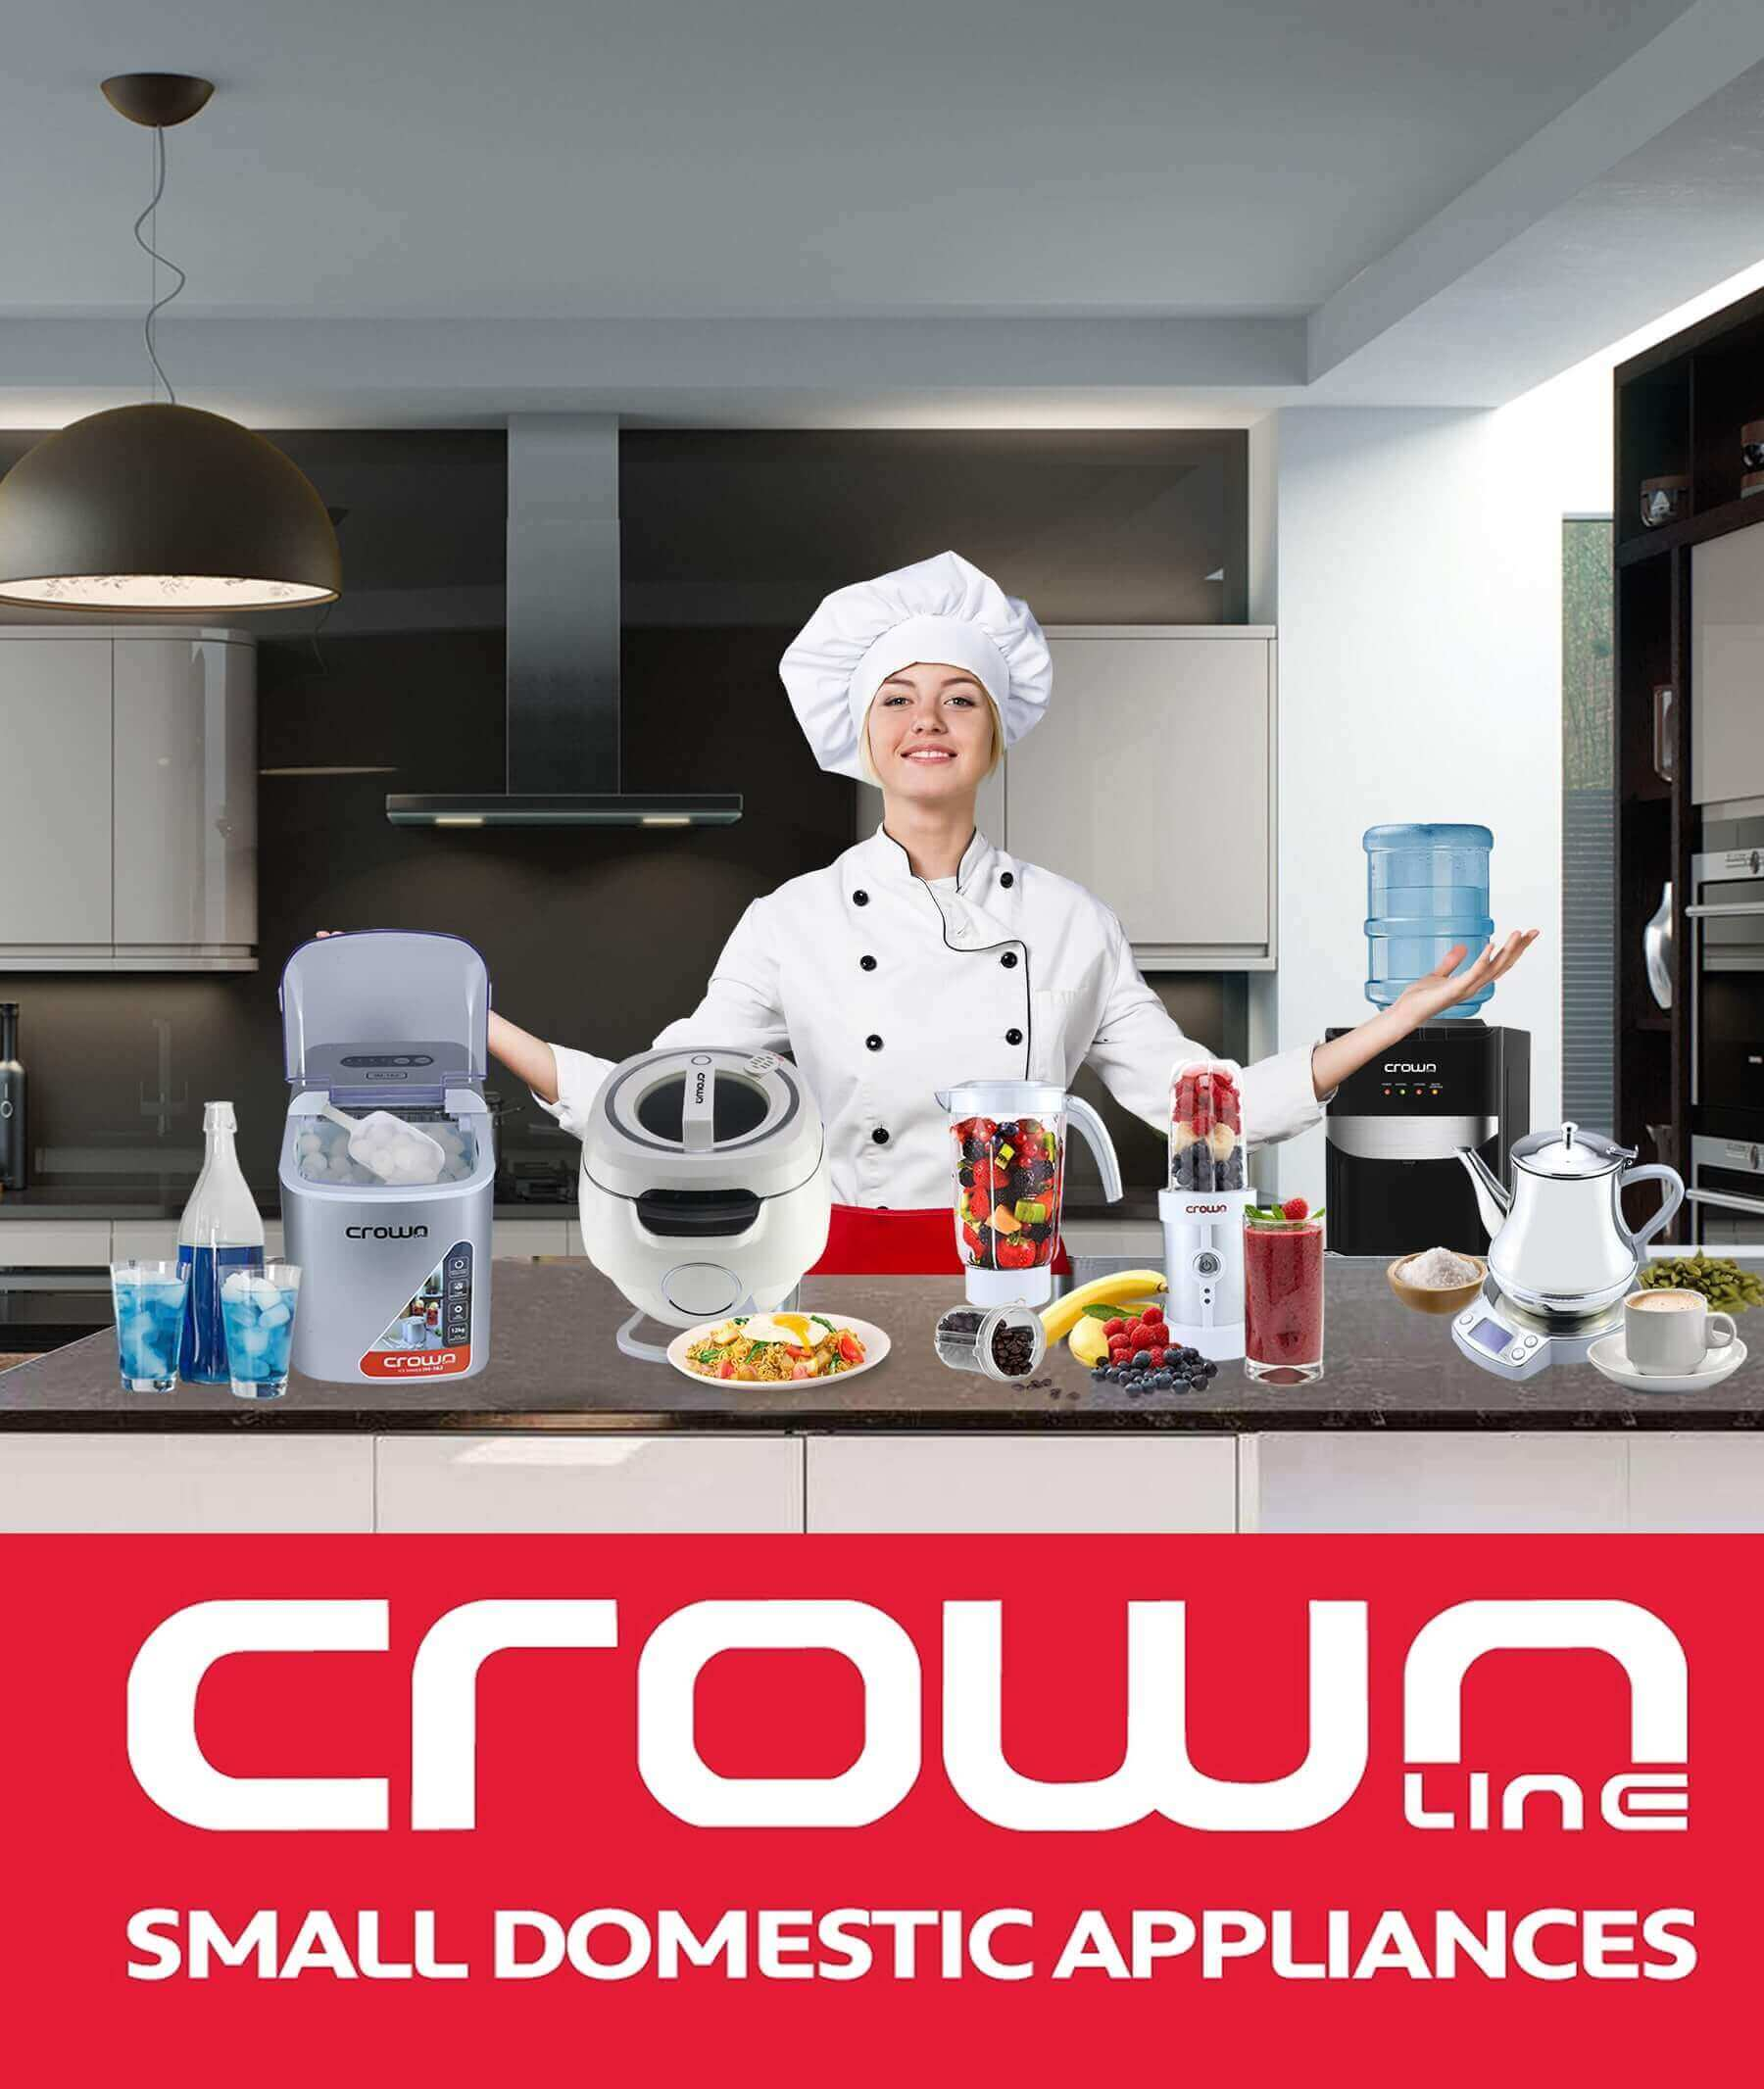 crown line home appliances display with women model